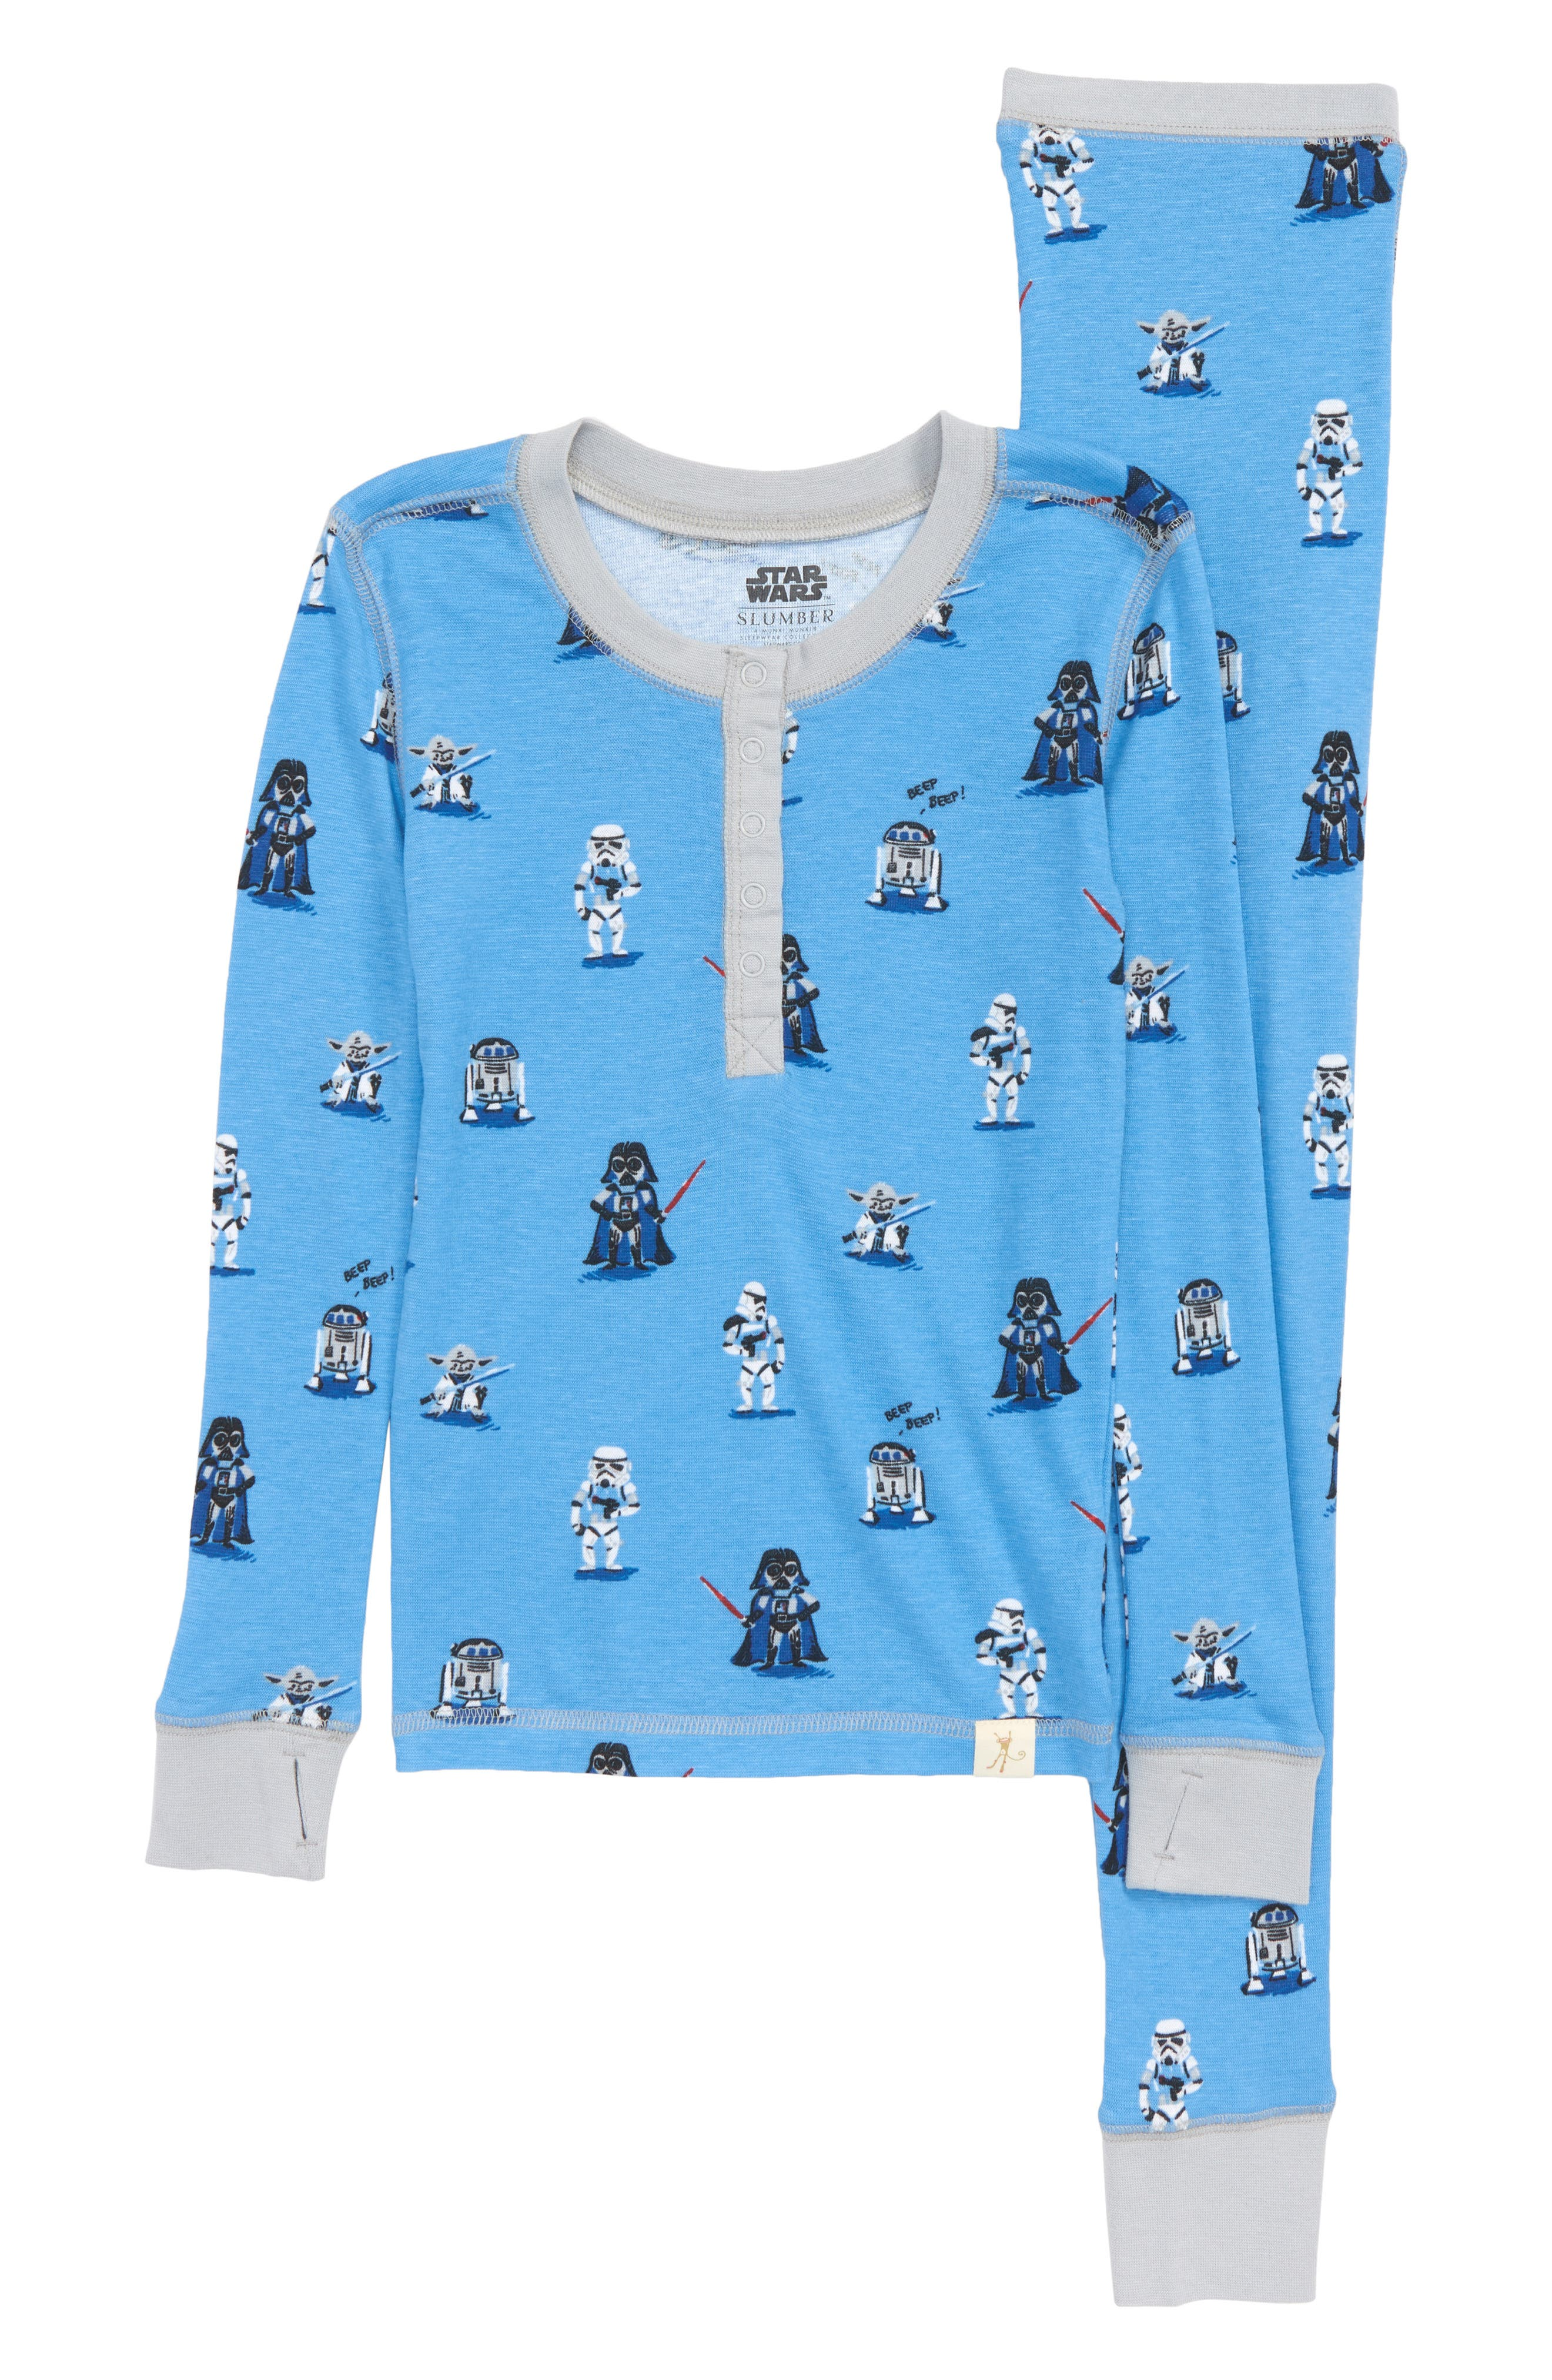 x Star Wars Fitted Two-Piece Pajamas,                             Main thumbnail 1, color,                             400